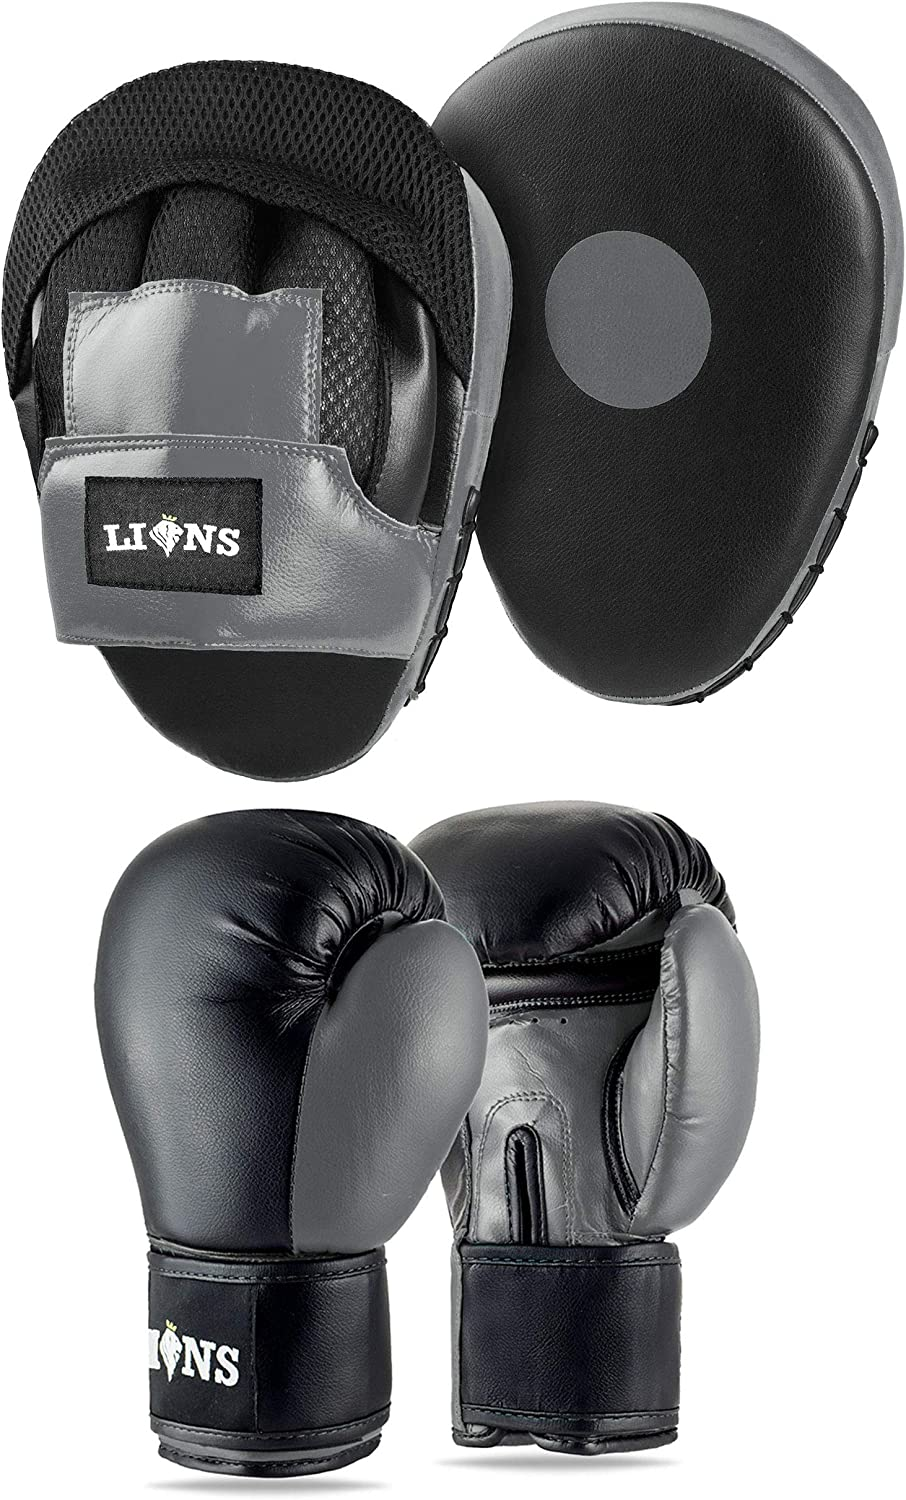 Hook /& Jab Mitts Sparring Gloves Set Mma Punch Bag Training Kit Lions Boxing Gloves and Pads